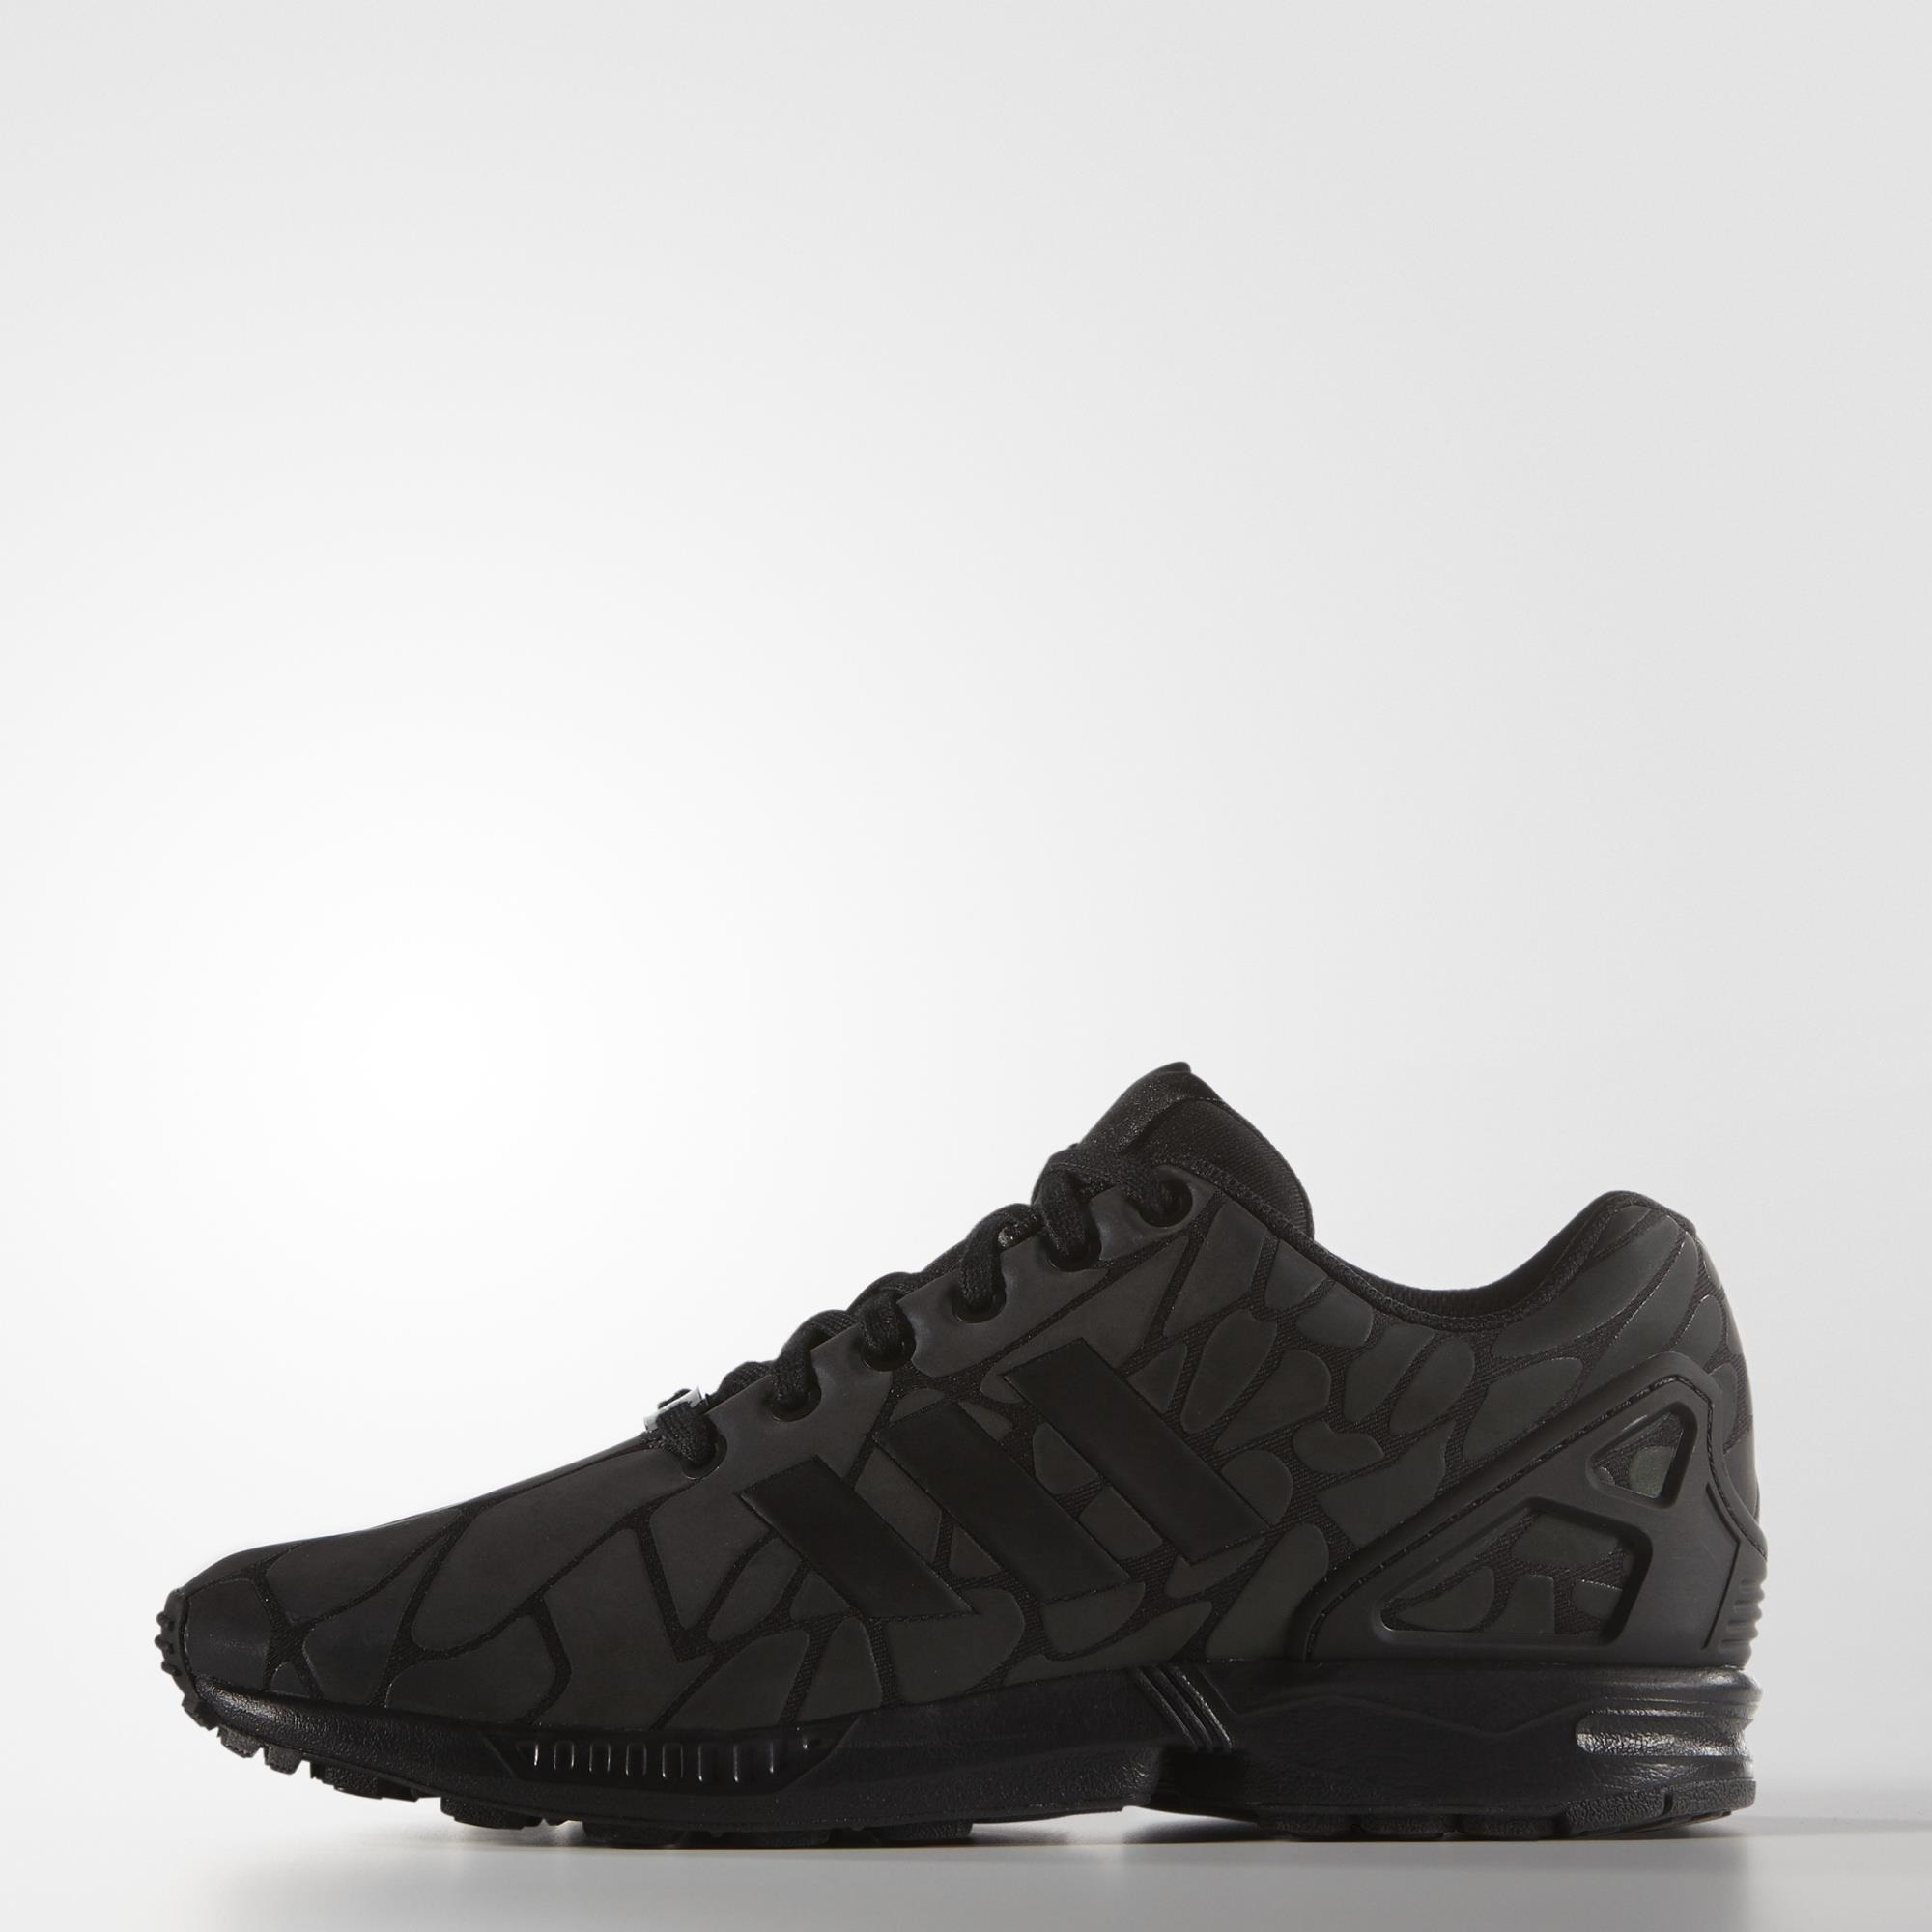 Adidas Shoes Zx Flux Black